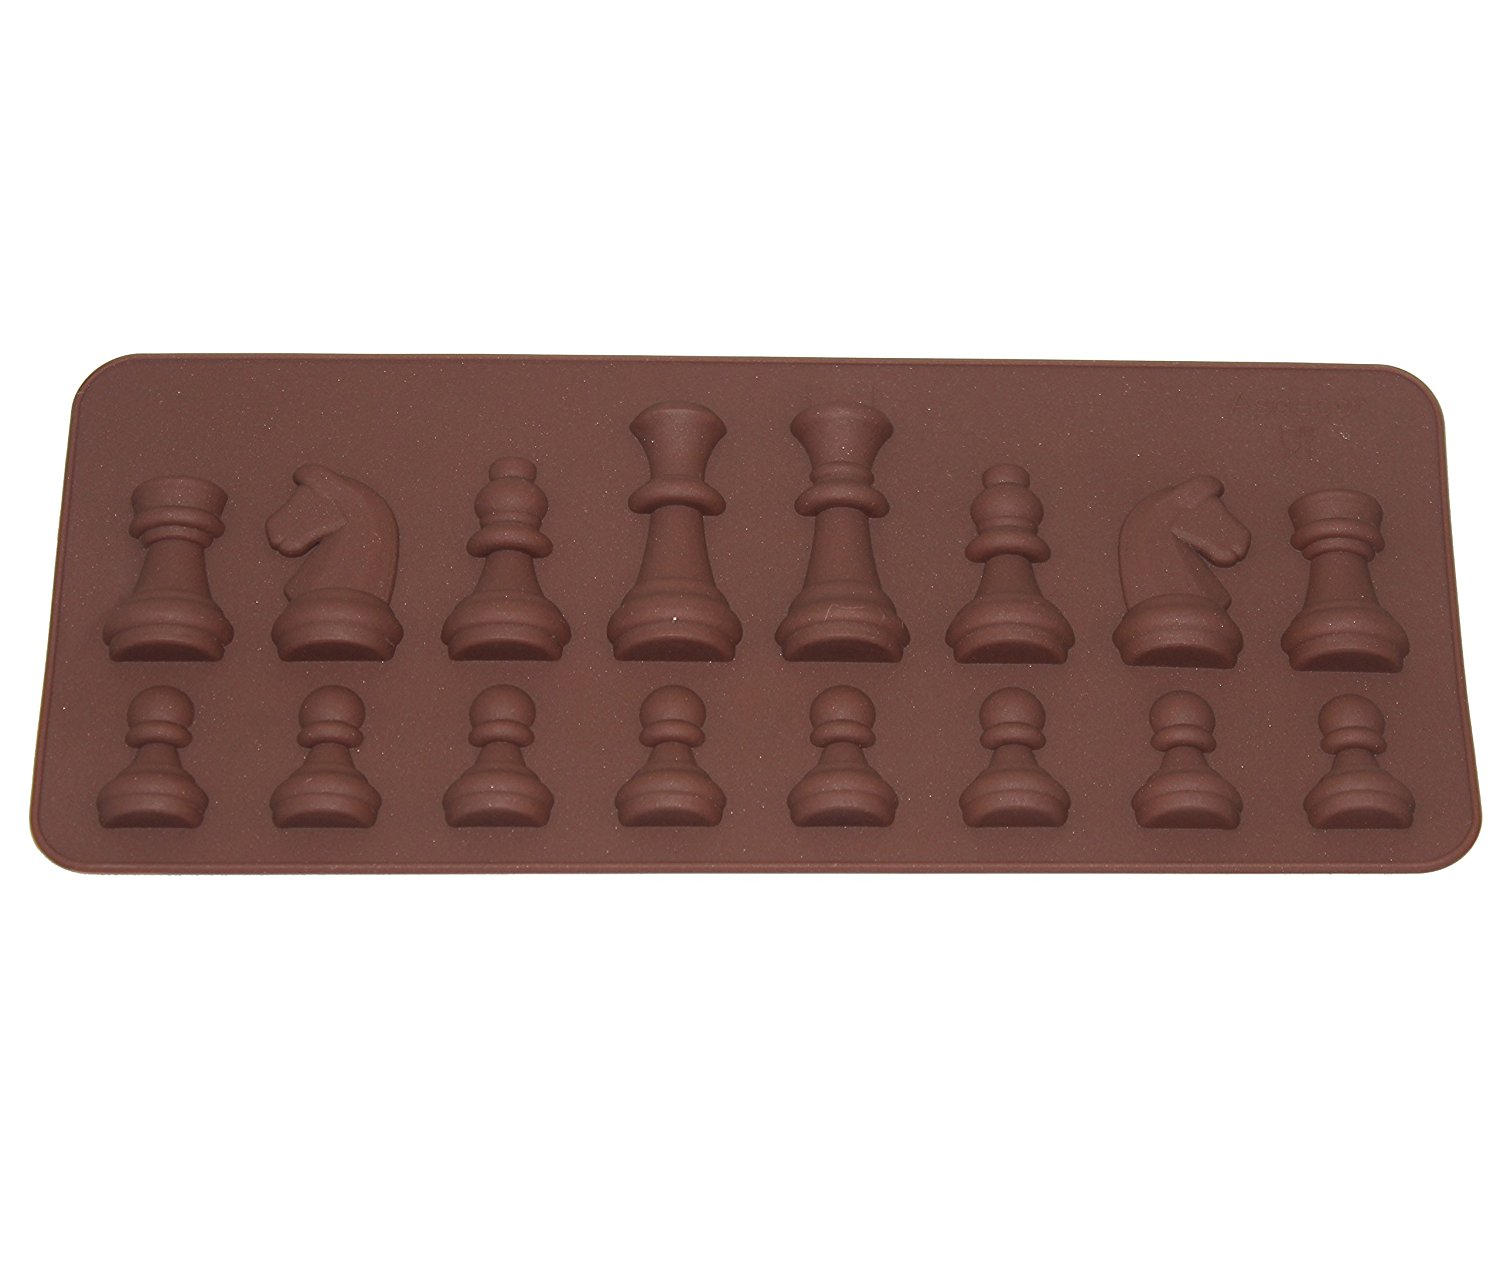 chess_candy_mold